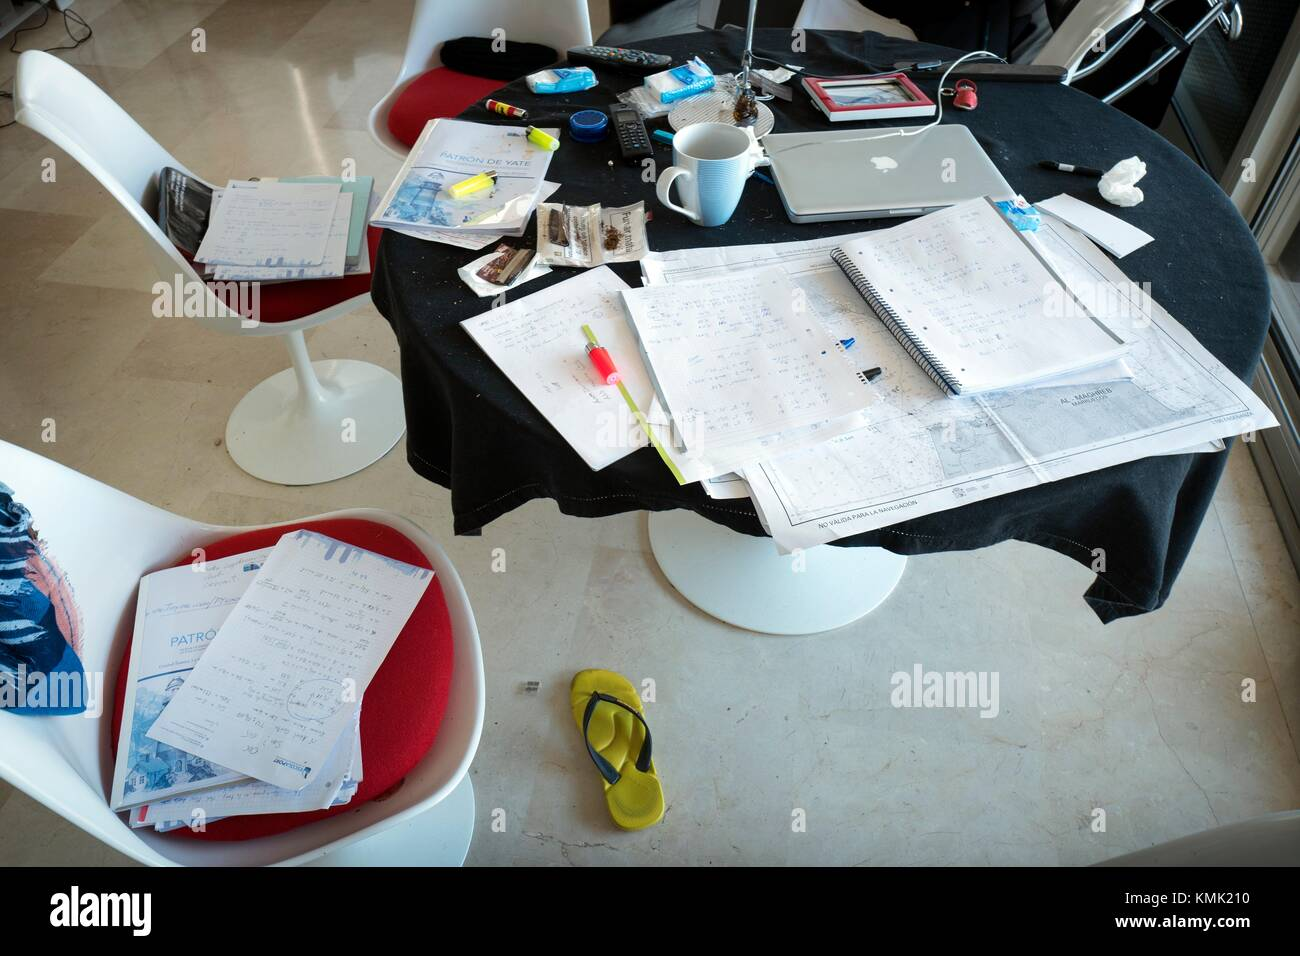 Messy working desk with many objects: paper, laptop computer, cup, etc. Barcelona, Catalonia, Spain - Stock Image